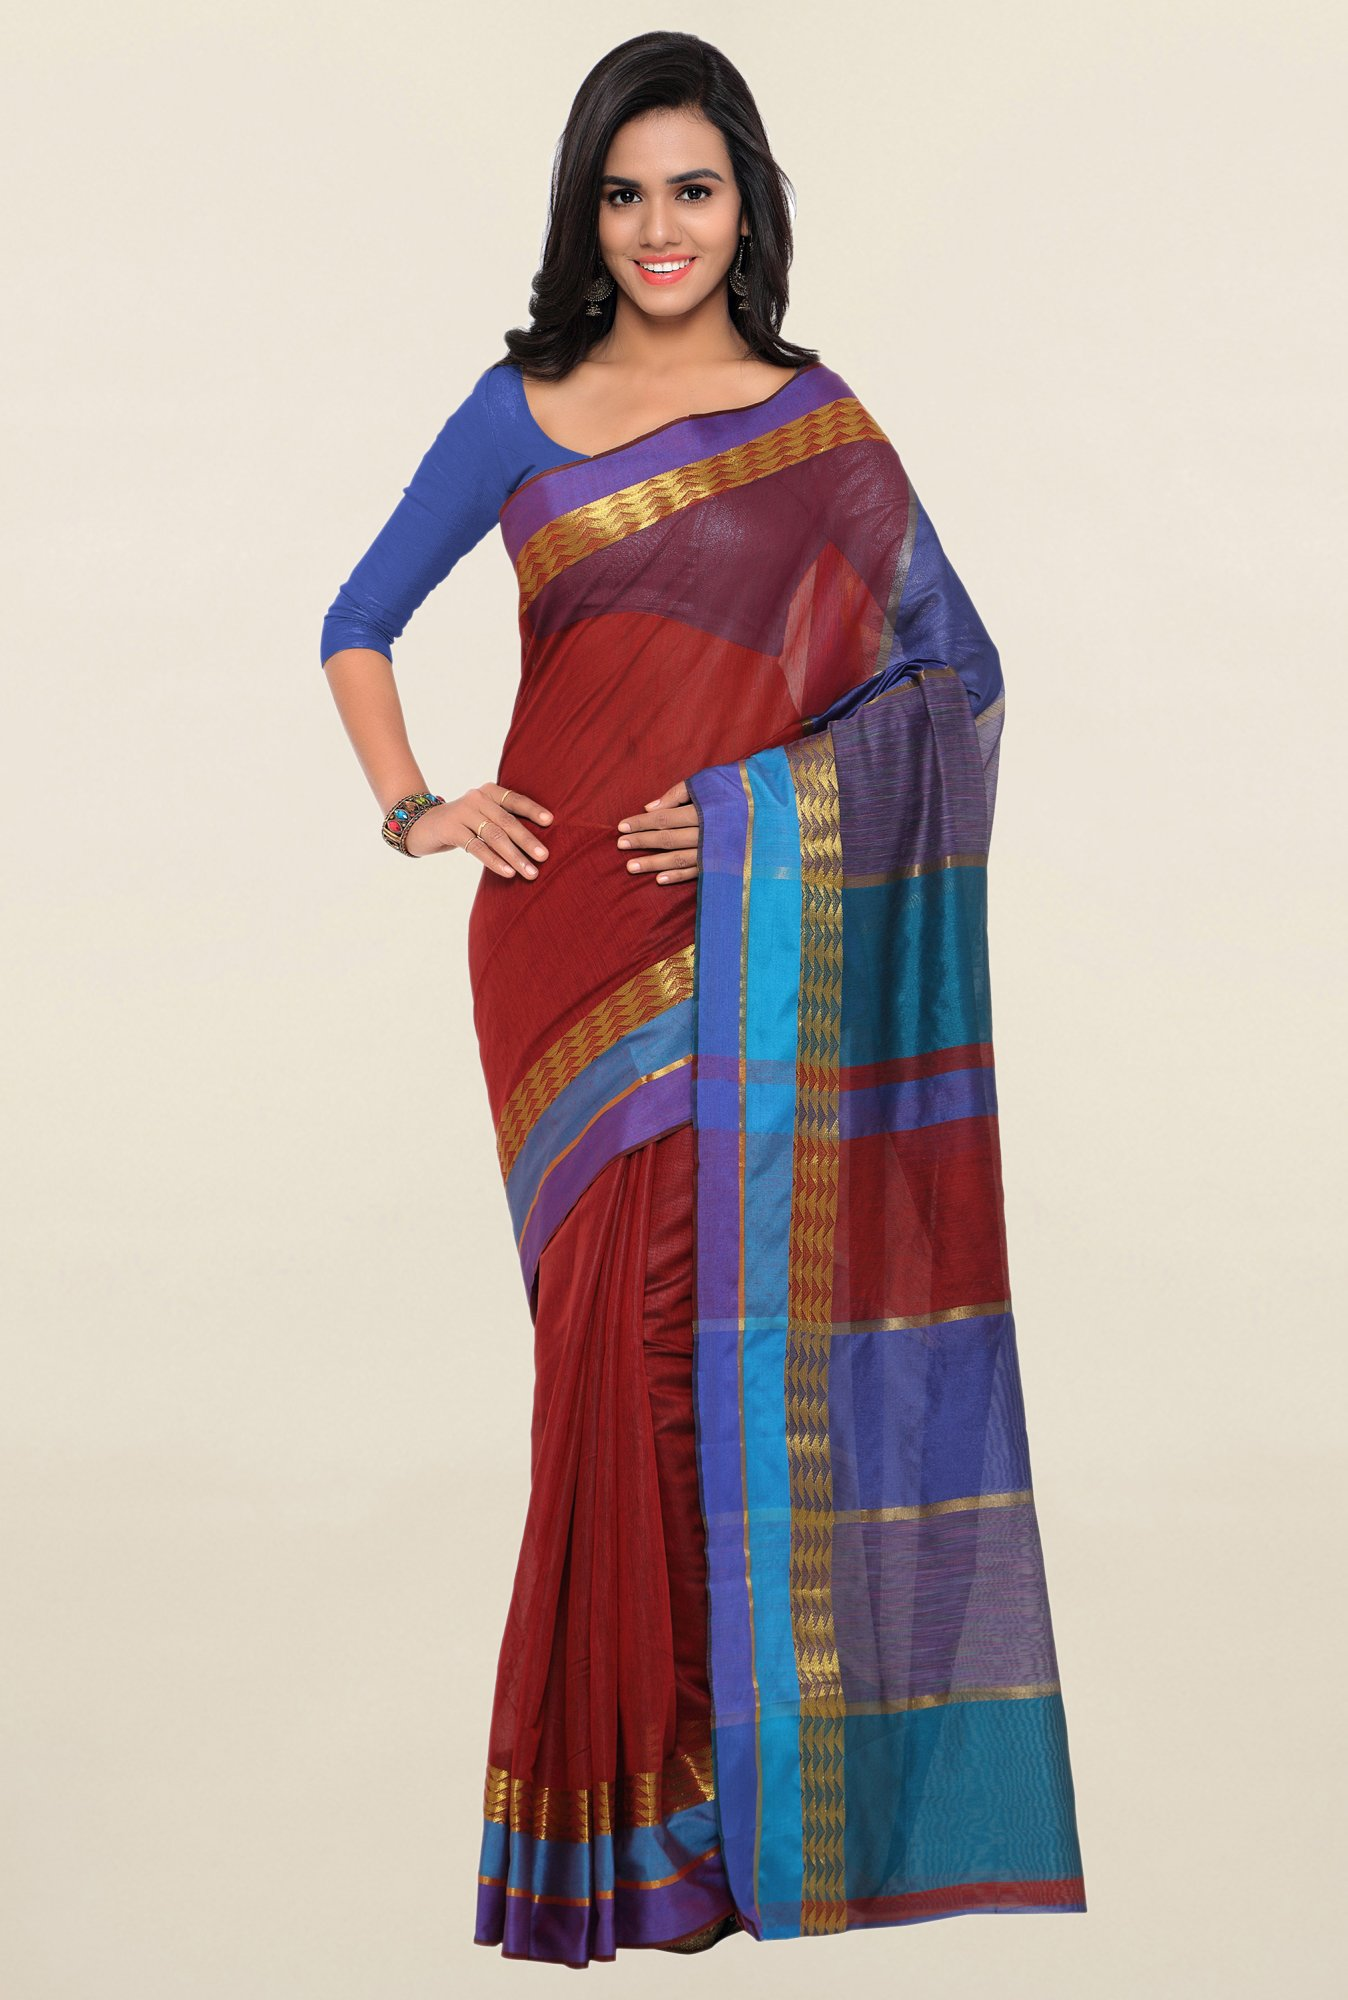 Triveni Red Textured Art Silk Saree